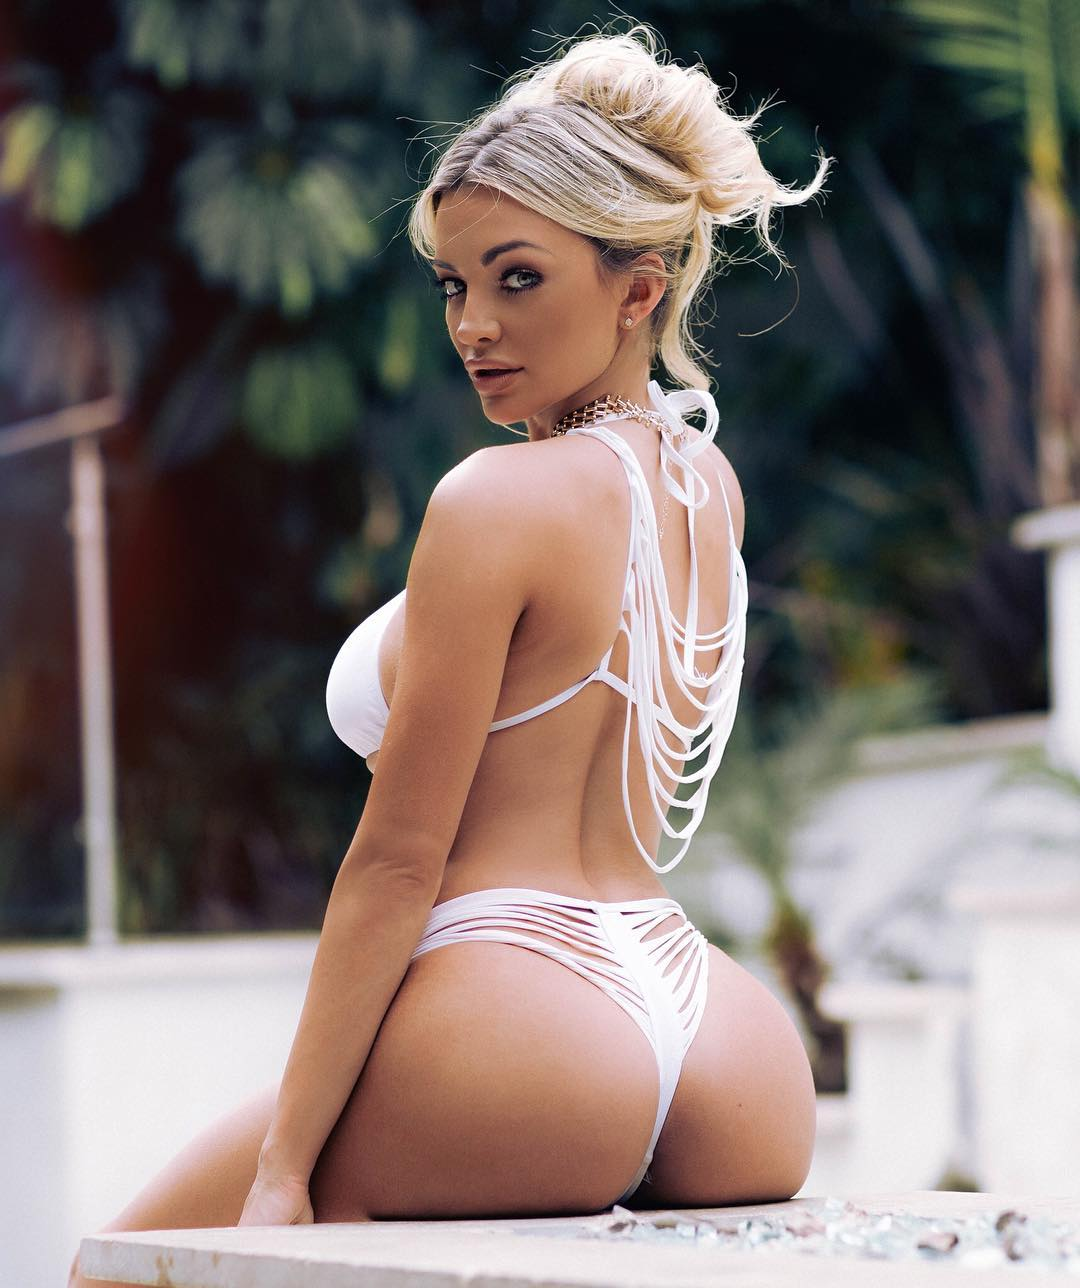 lindsey-pelas-bikini-pics-are-so-hot-4